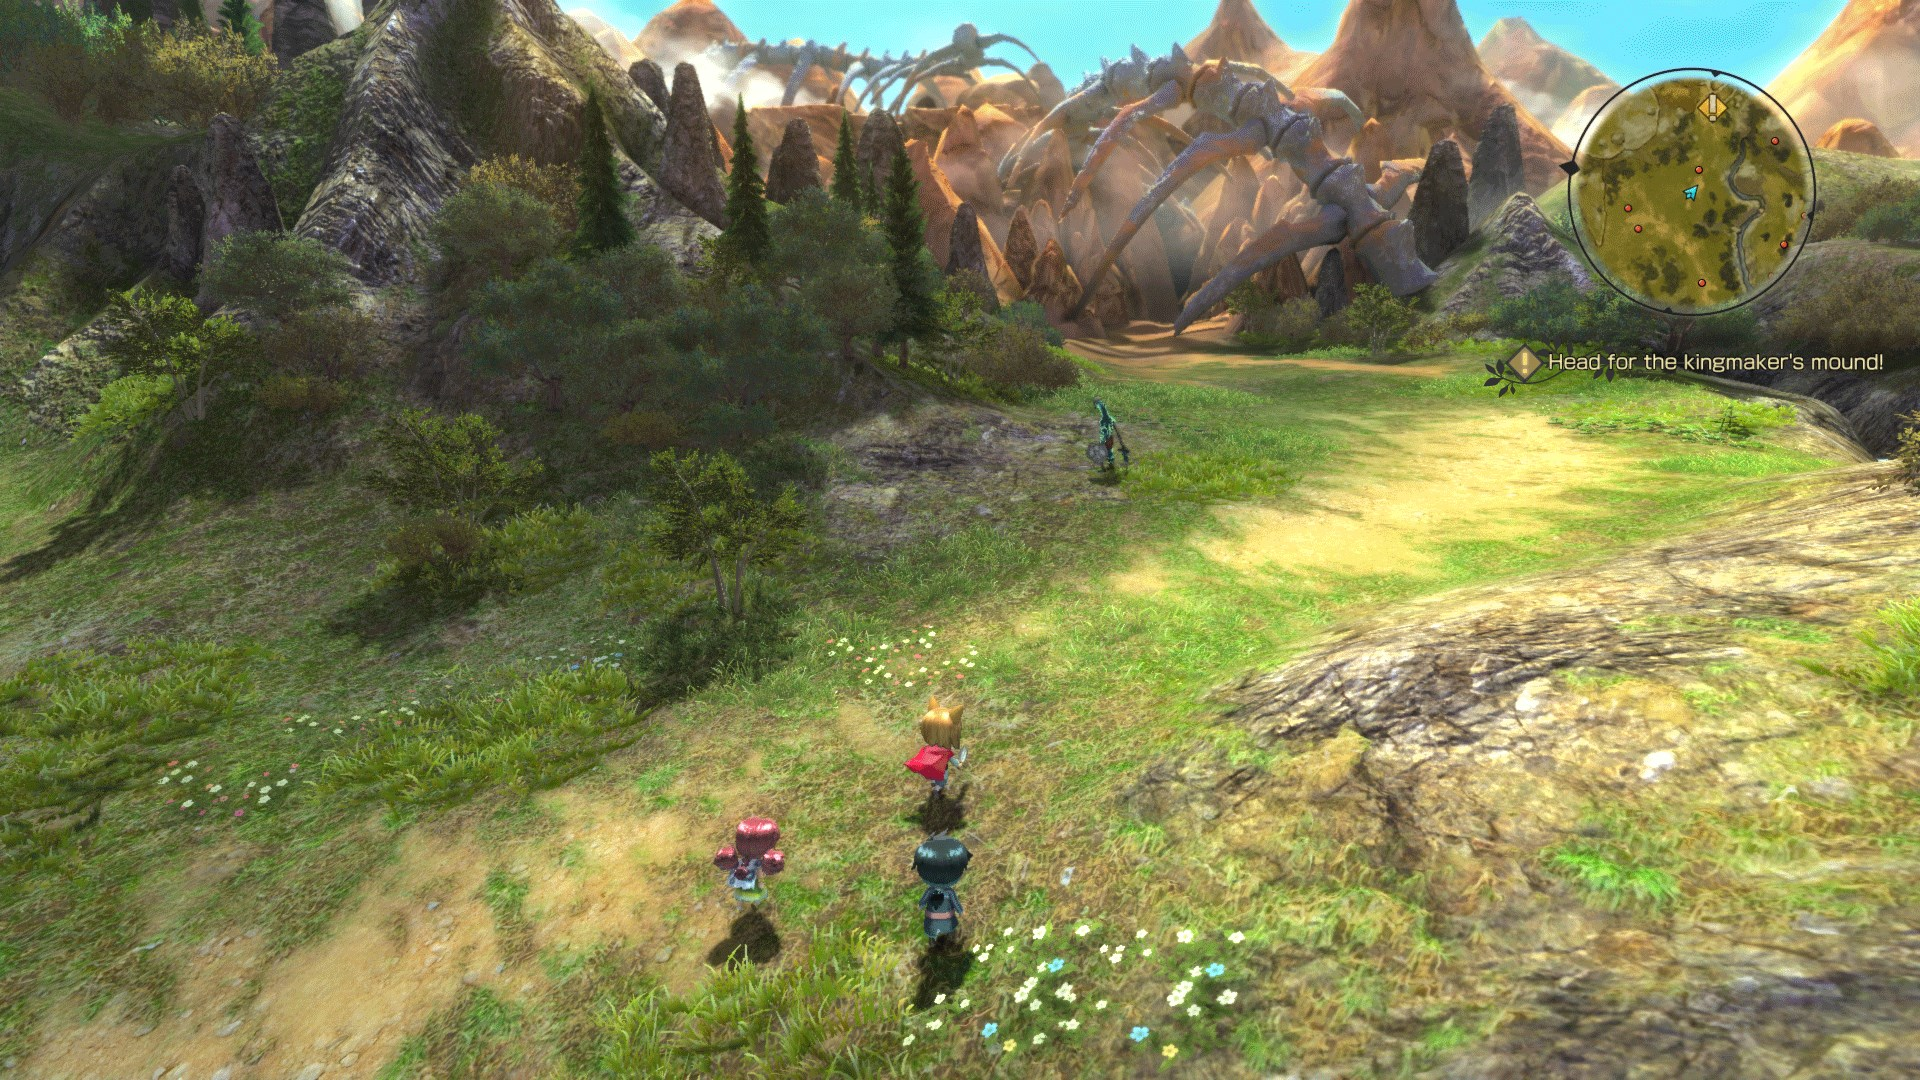 Ni no Kuni 2 is also coming to PC